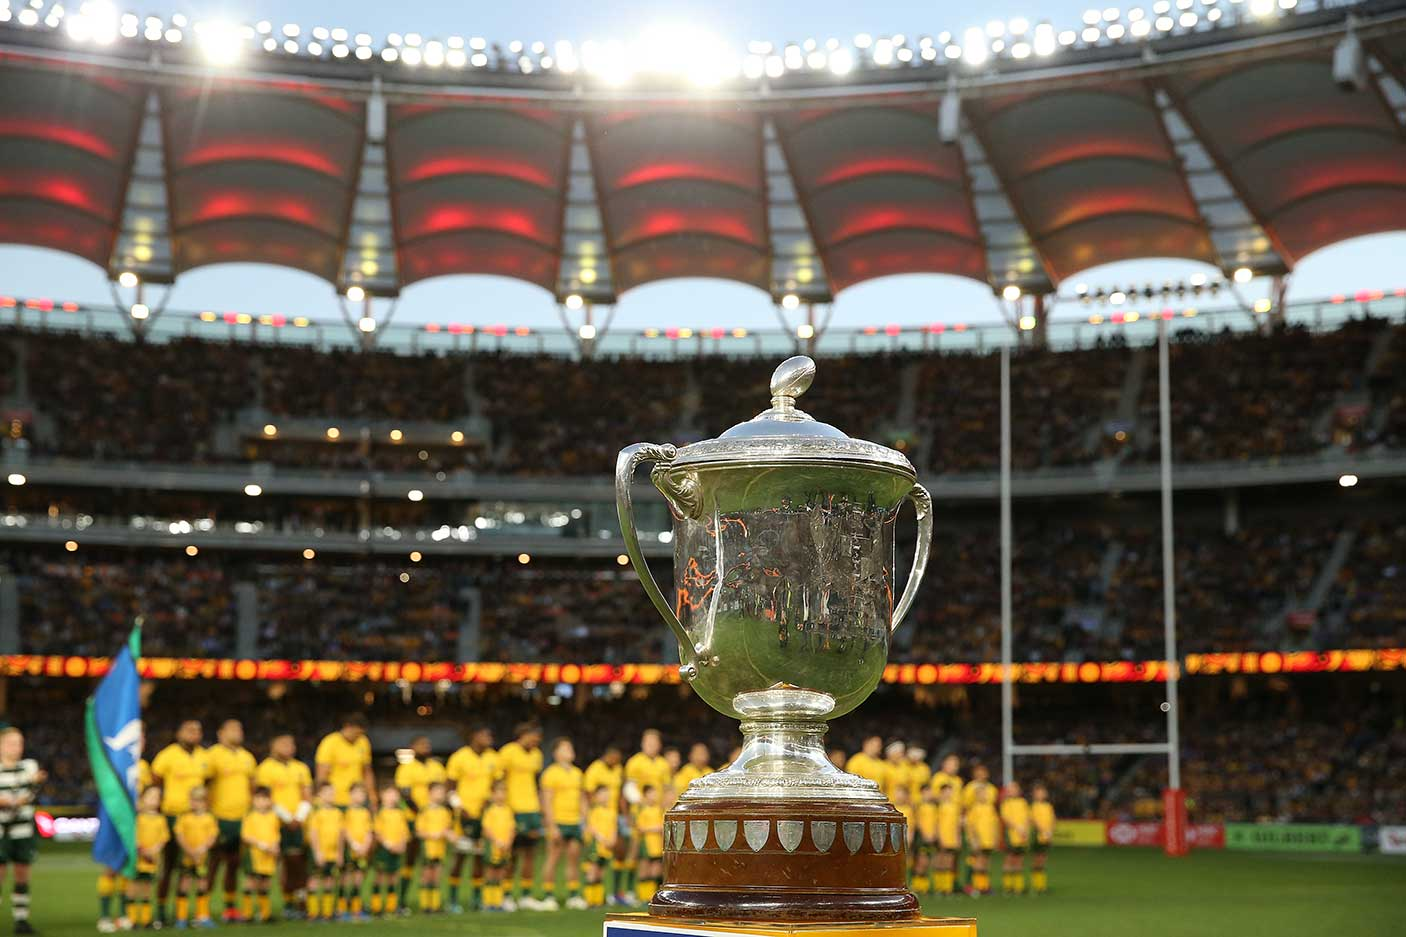 The Bledisloe Cup in focus with the Wallabies lined up behind it at Optus Stadium